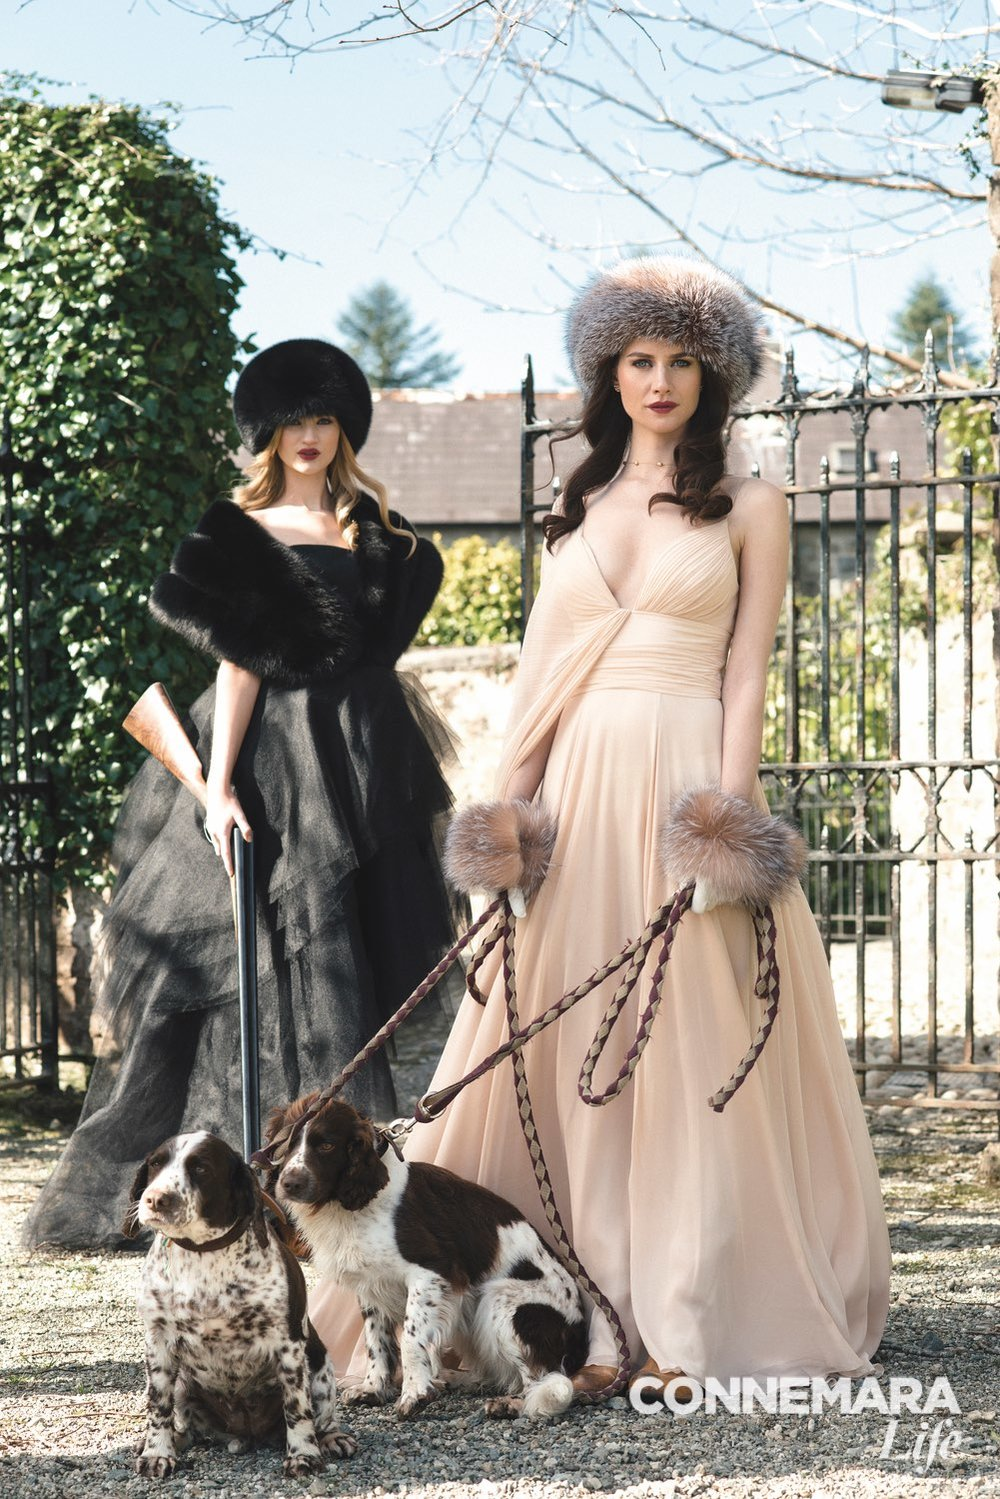 On Clara, left:  Christian Siriano gown, Resort 2015 collection; Surell Accessories fox fur stole and bubble hat in black by Surell Accessories   On Faye, right:  Christian Siriano blush silk chiffon pleated gown; gloves and fox fur cuffs and bubble hat in crystal by Surell Accessories; necklace available at Destin Jewelers